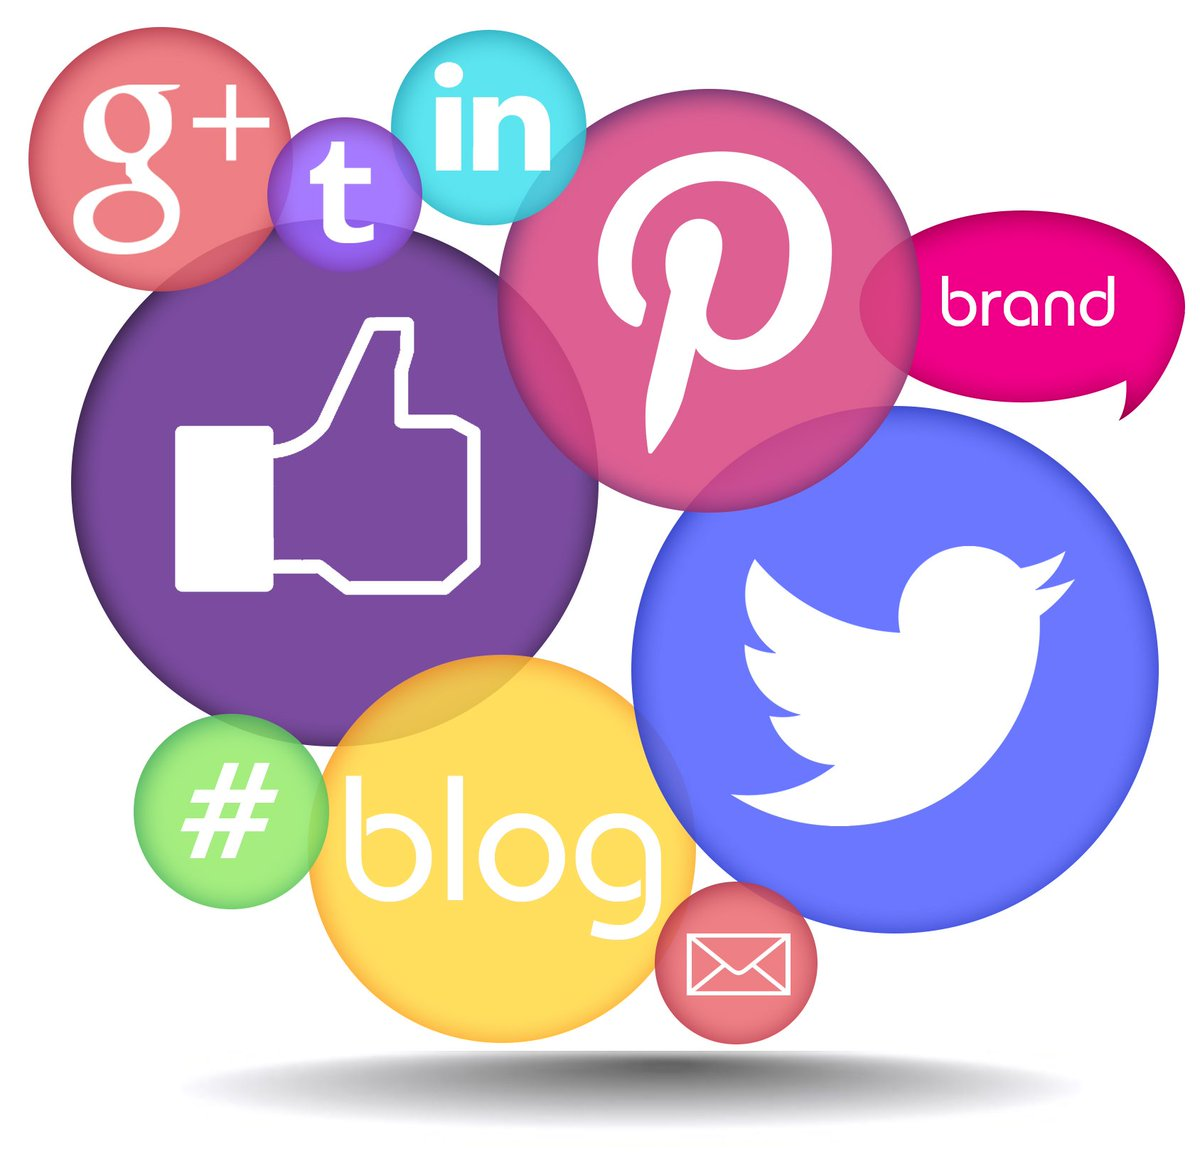 #E-commerce #SEO #SEM #Consulting #Operations How To Make Money Online With Mini-course Email Marketing!  http:// dlvr.it/PPwZcq  &nbsp;  <br>http://pic.twitter.com/MHaYERLK0F